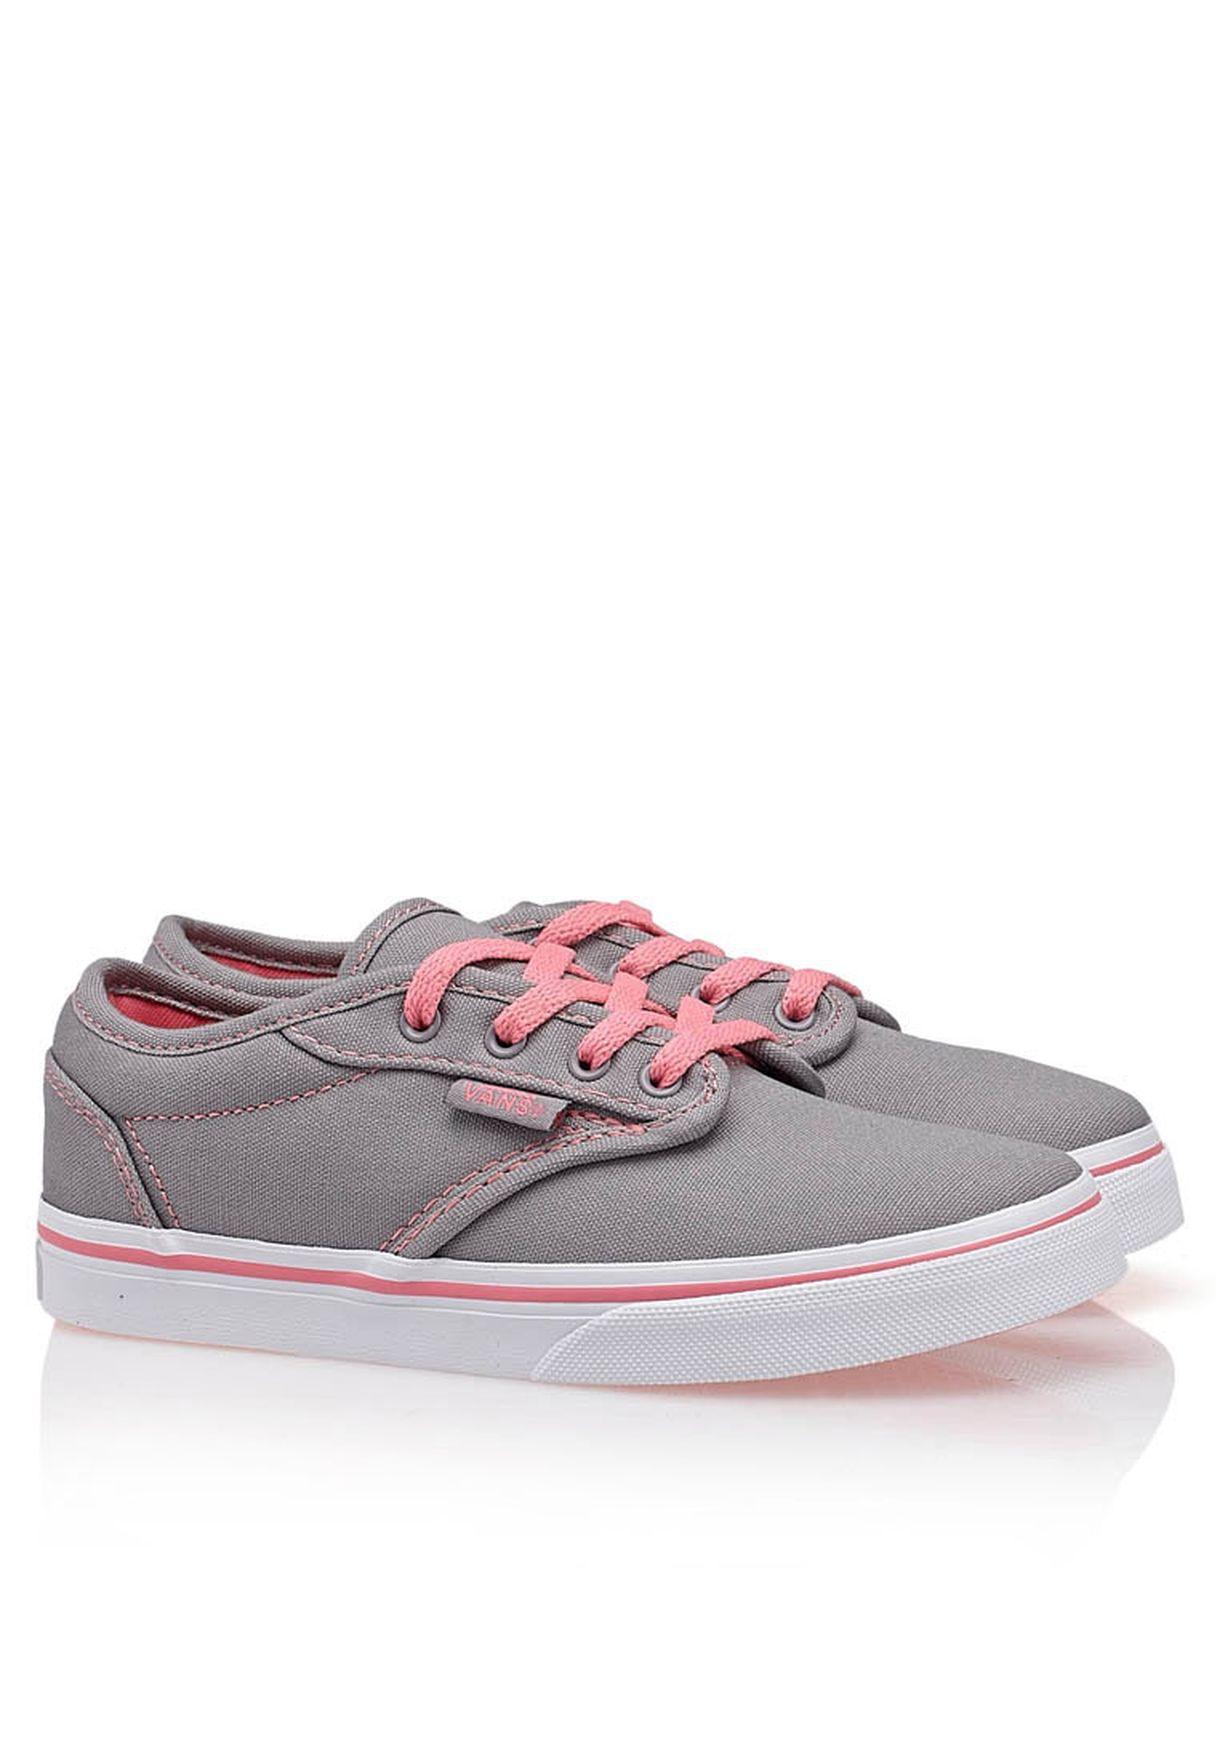 f7aa224d9126 Shop Vans grey Atwood Low Sneakers for Kids in Saudi - VA088SH09TJI